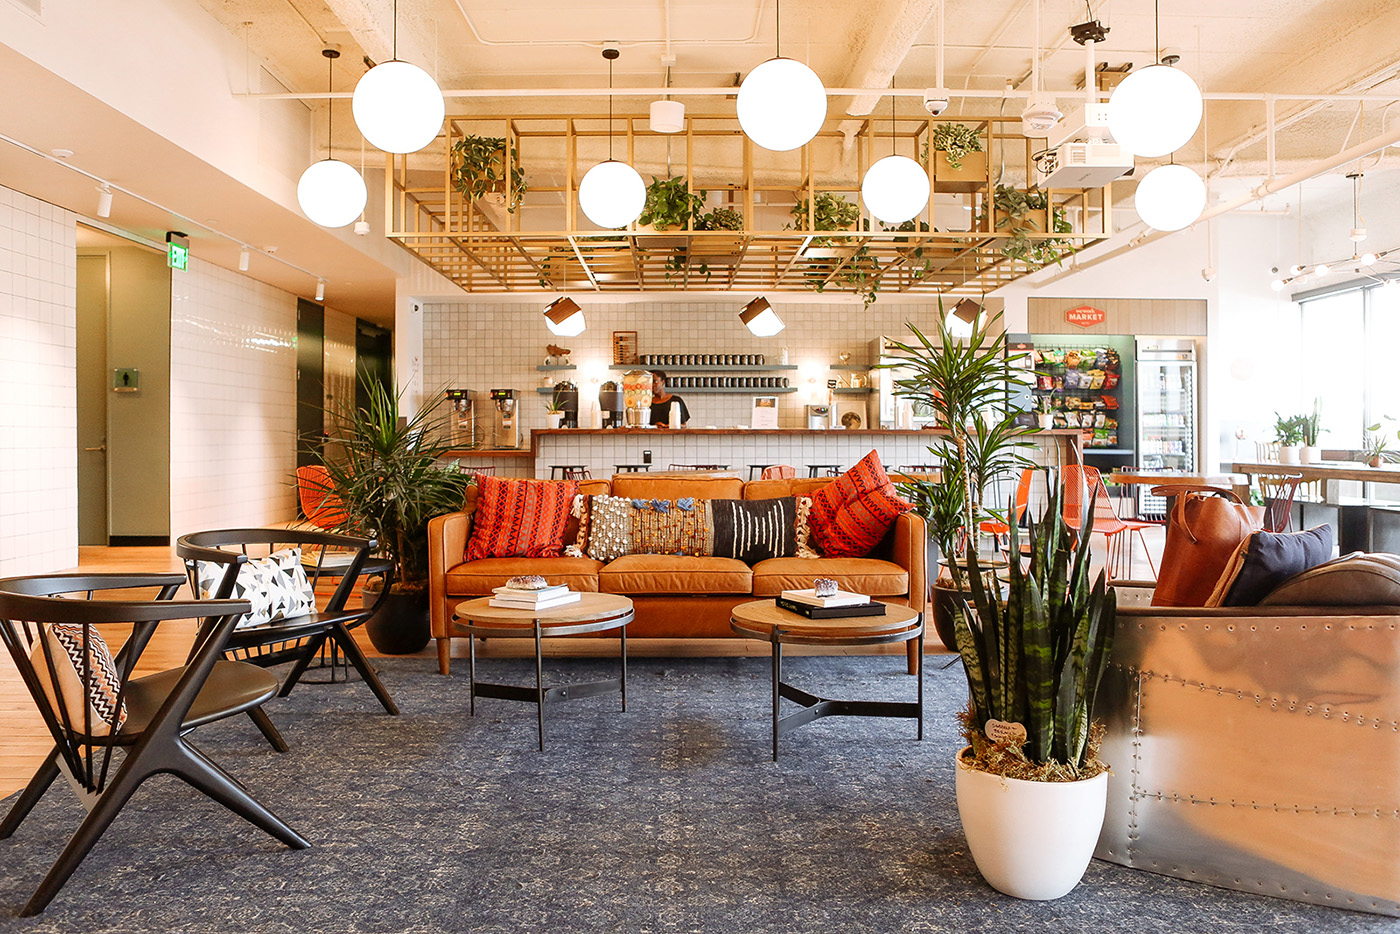 View More: http://twentytwentystudios.pass.us/wework-projects